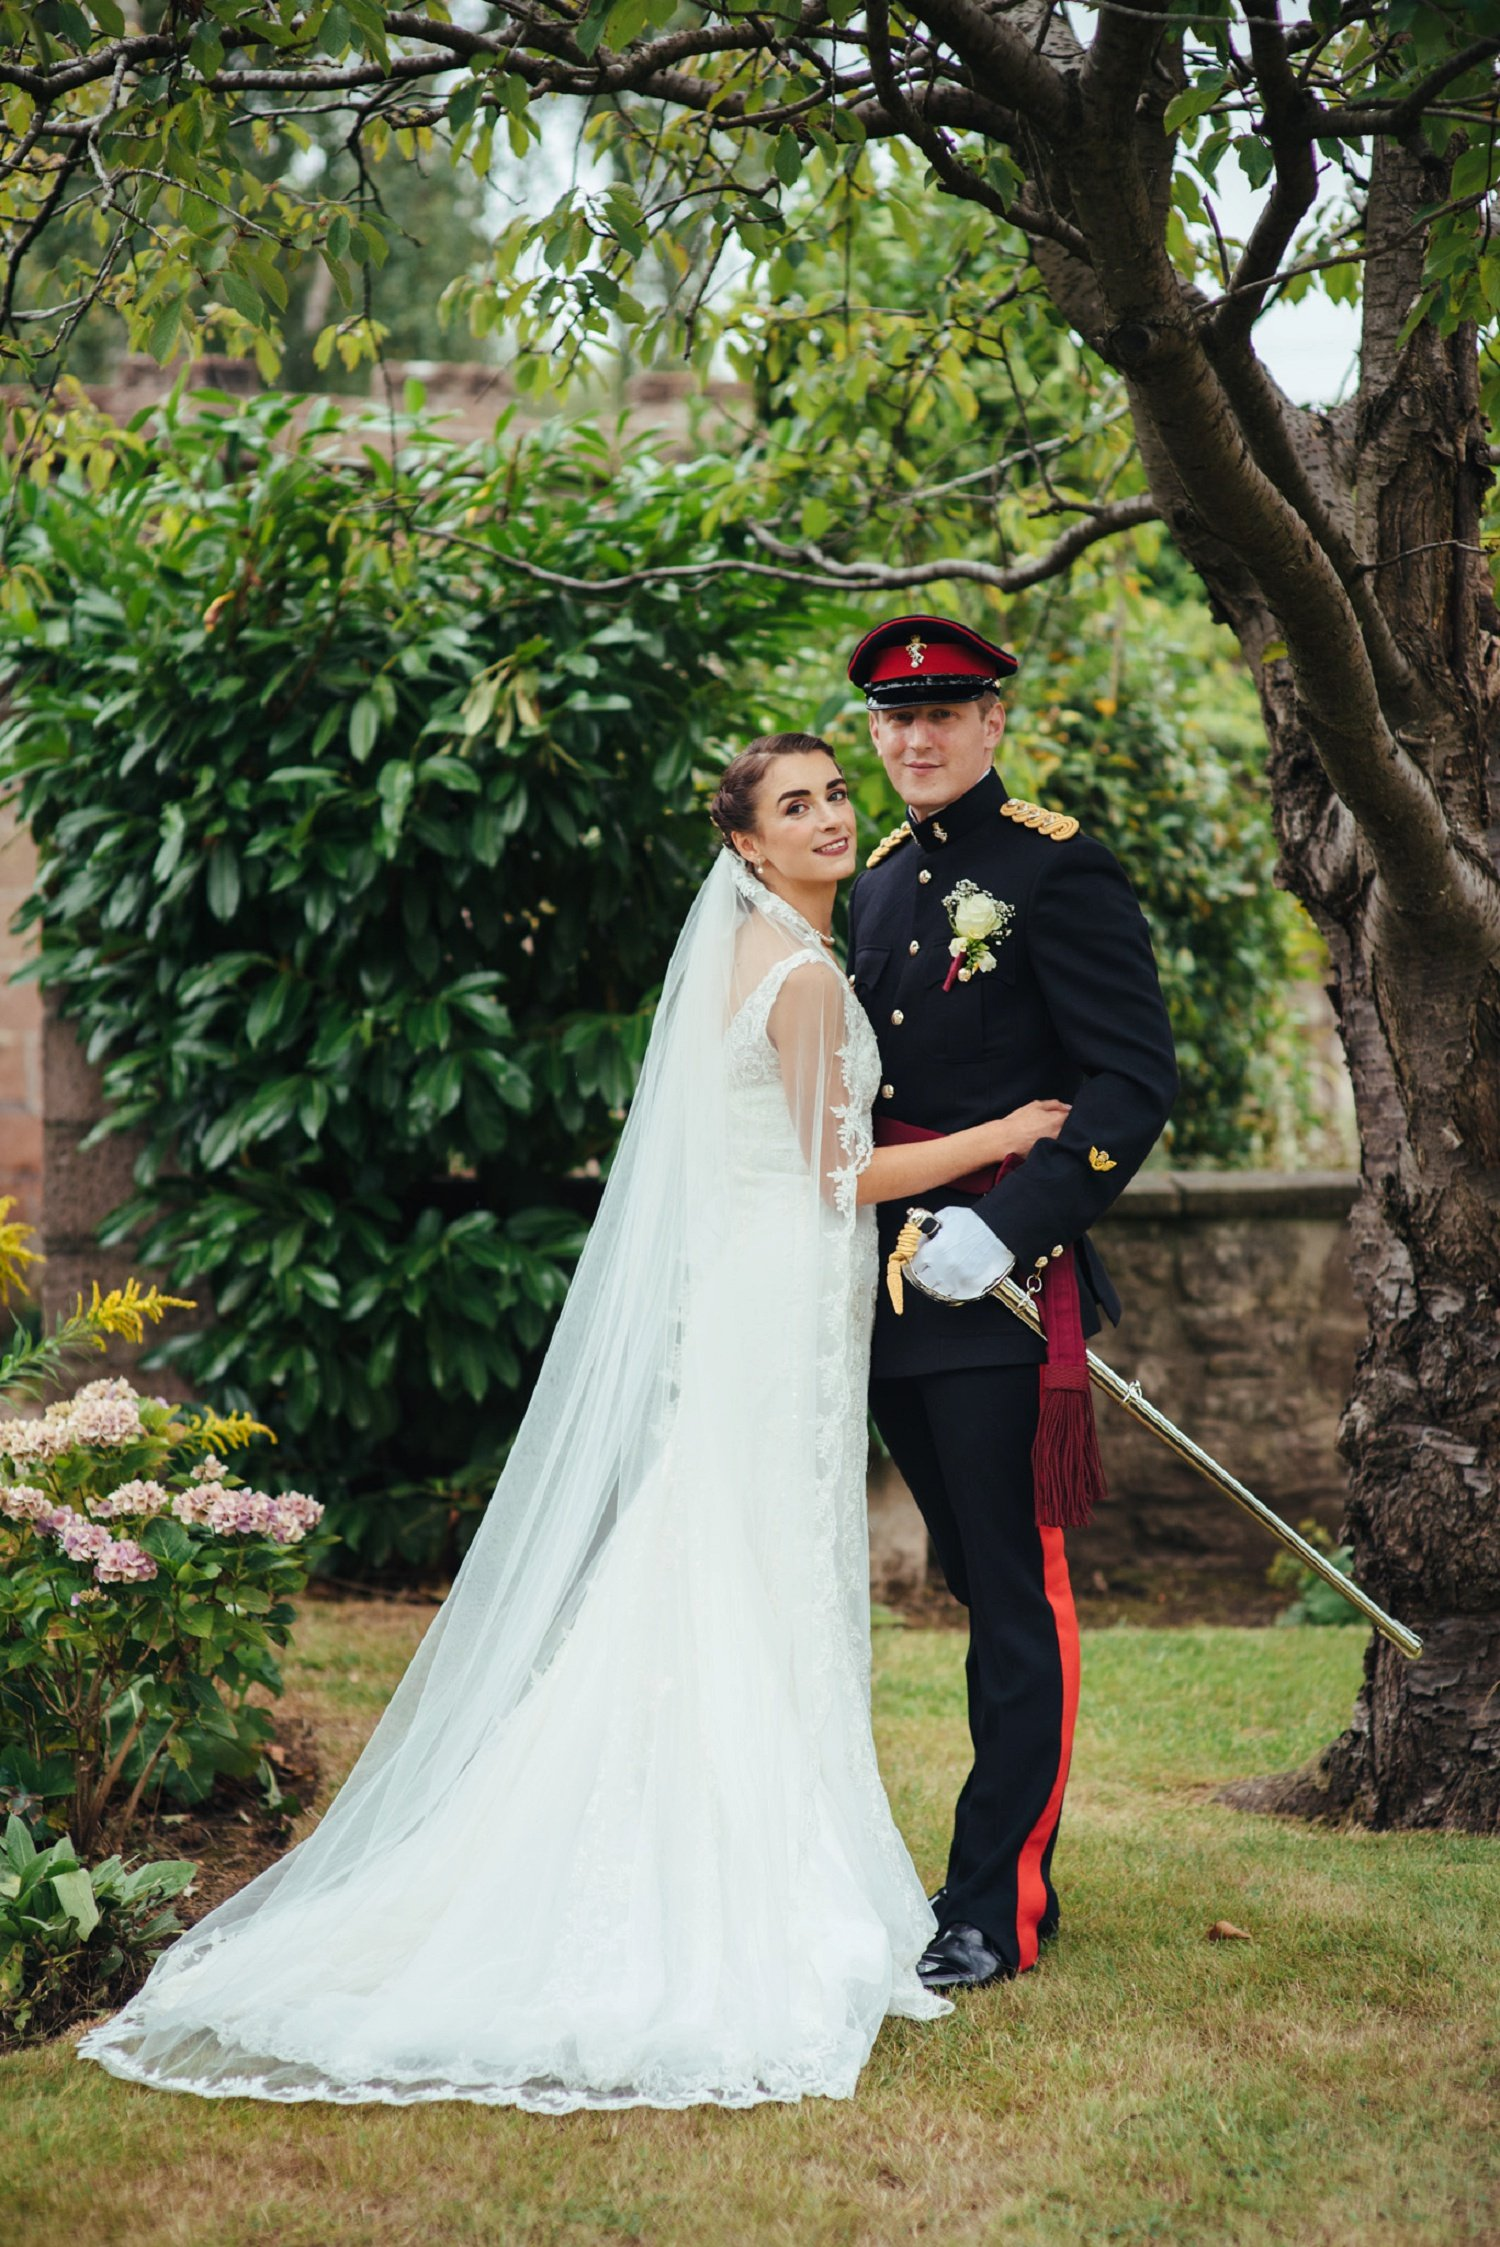 Bride and groom portrait at Glewstone Court